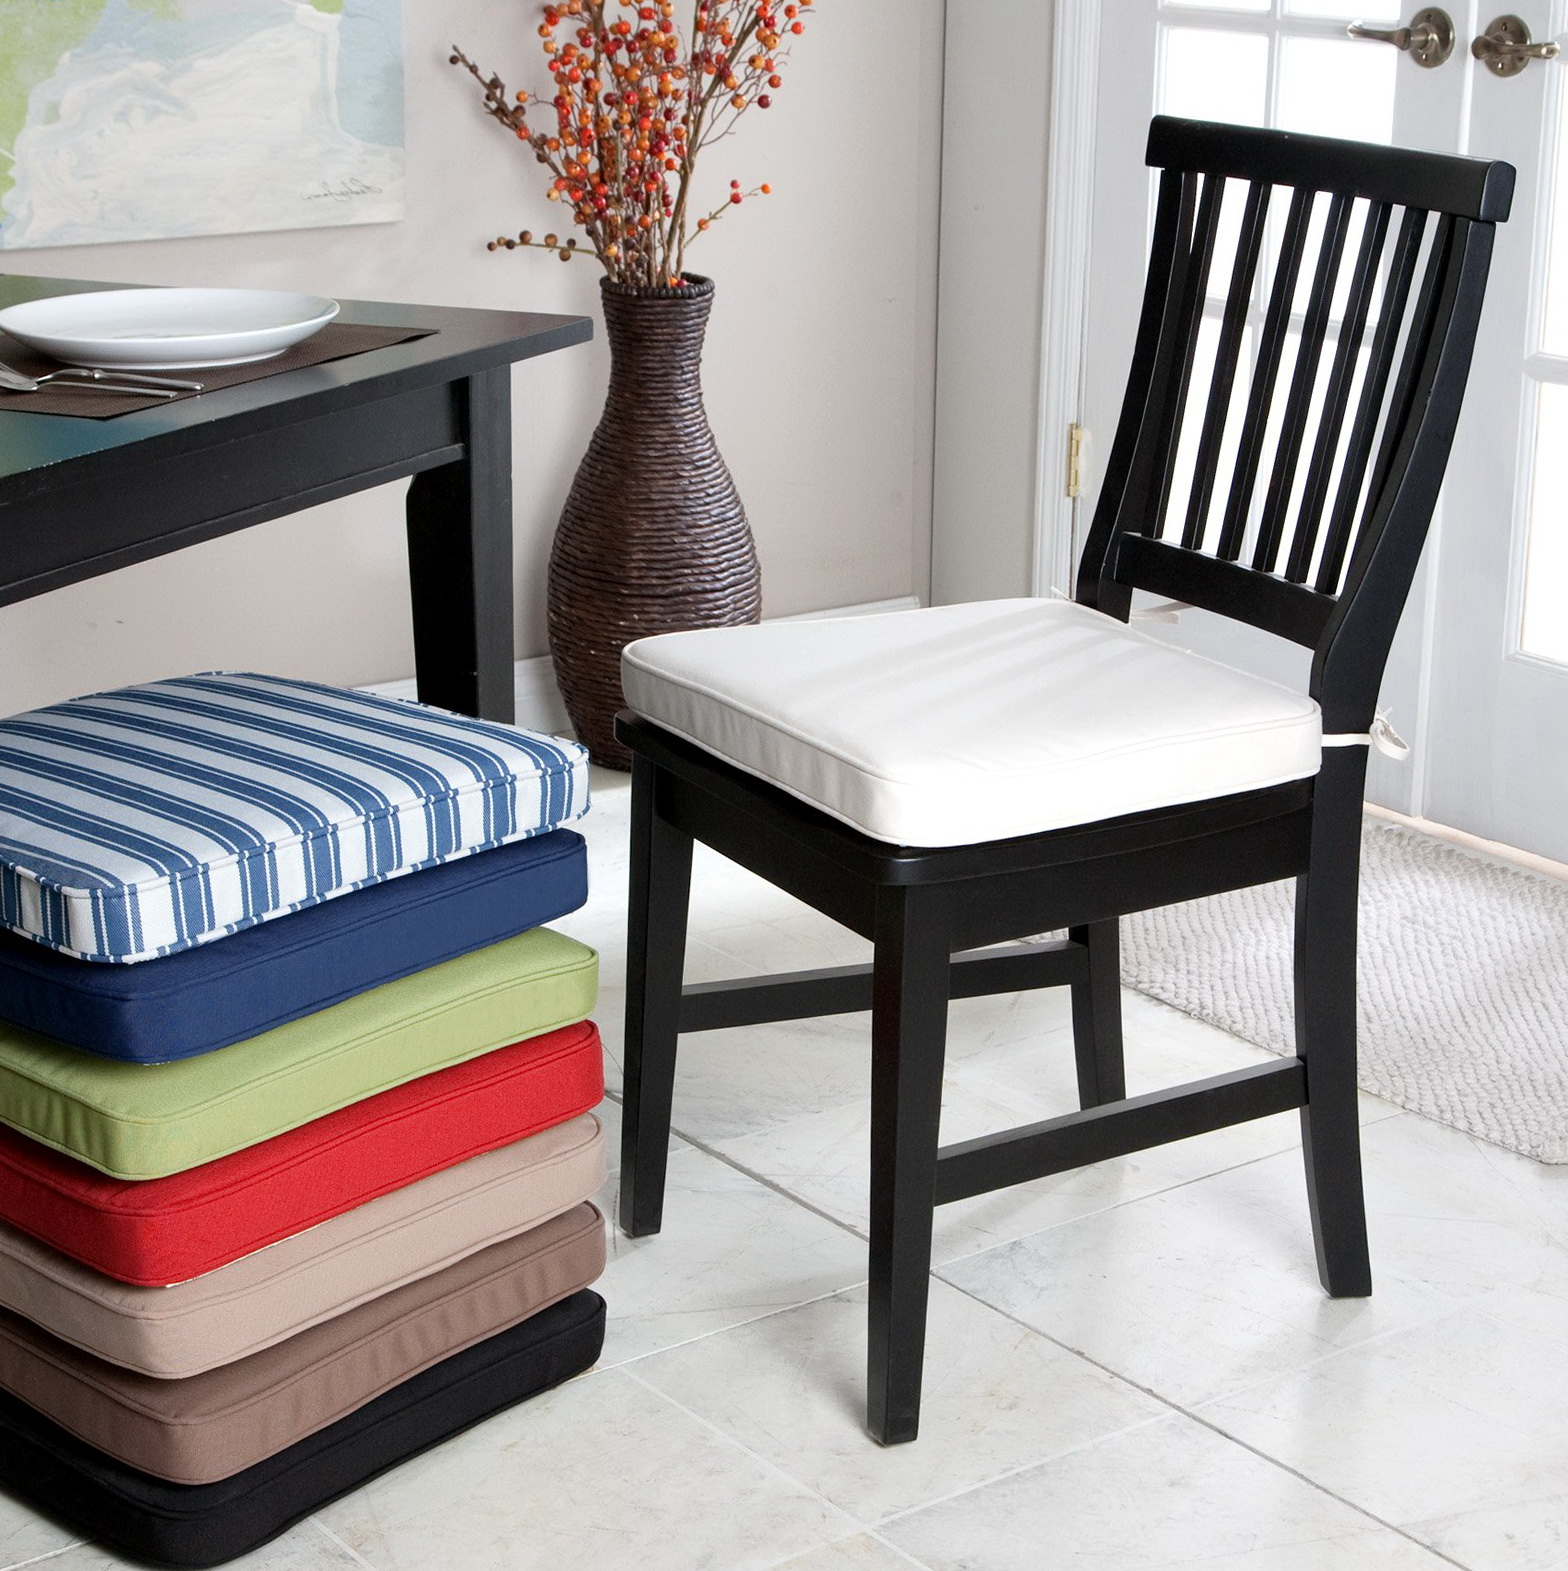 Cushions For Kitchen Chairs Walmart Home Design Ideas